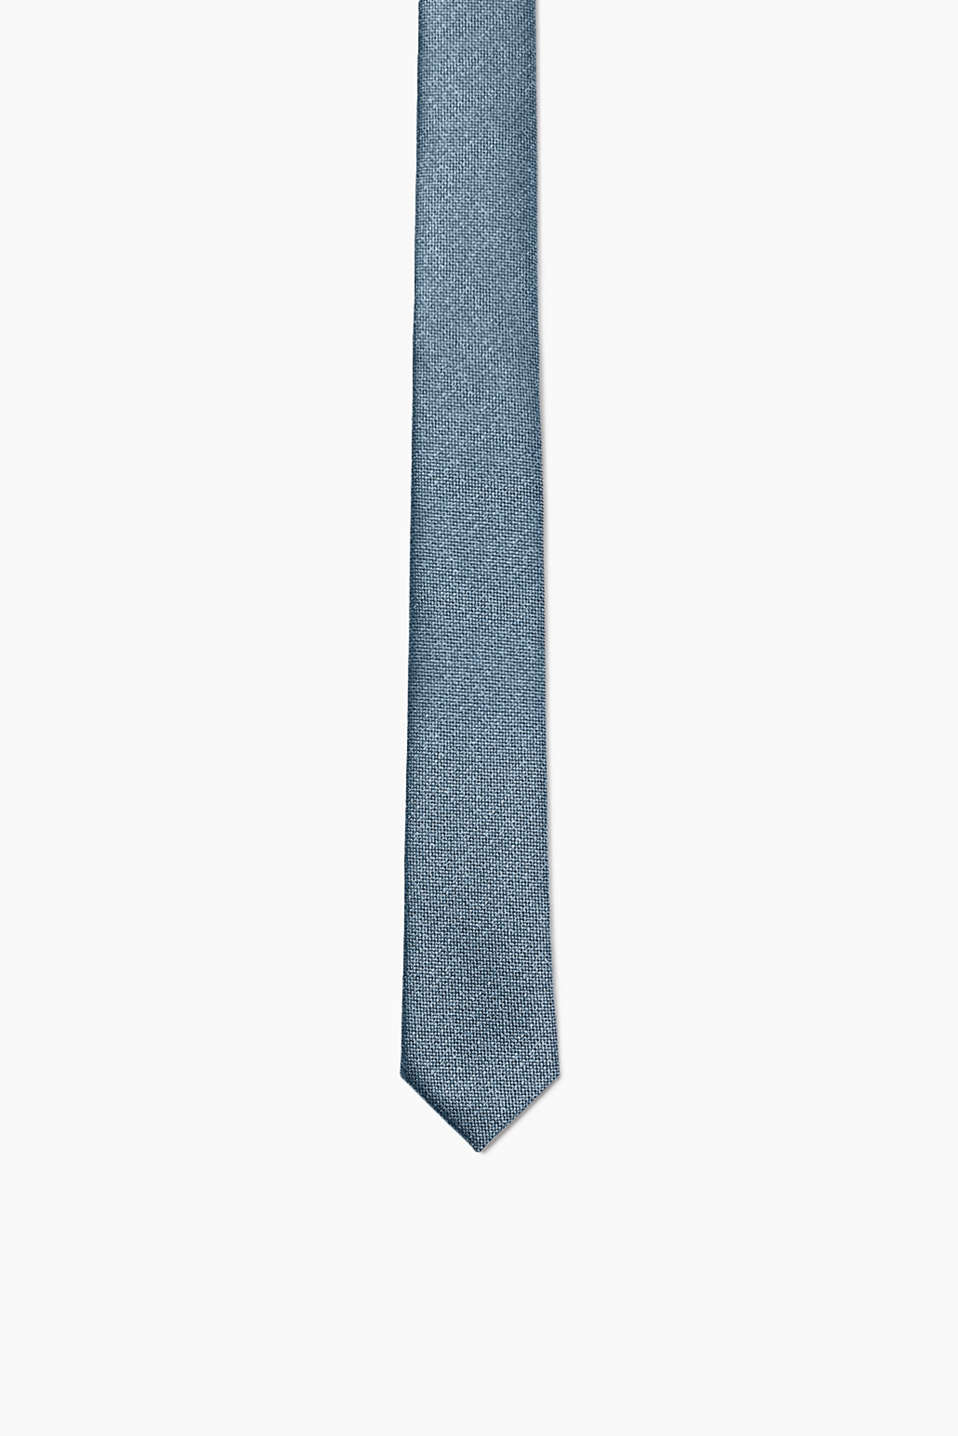 Skinny tie with a tone-in-tone texture and a fine sheen